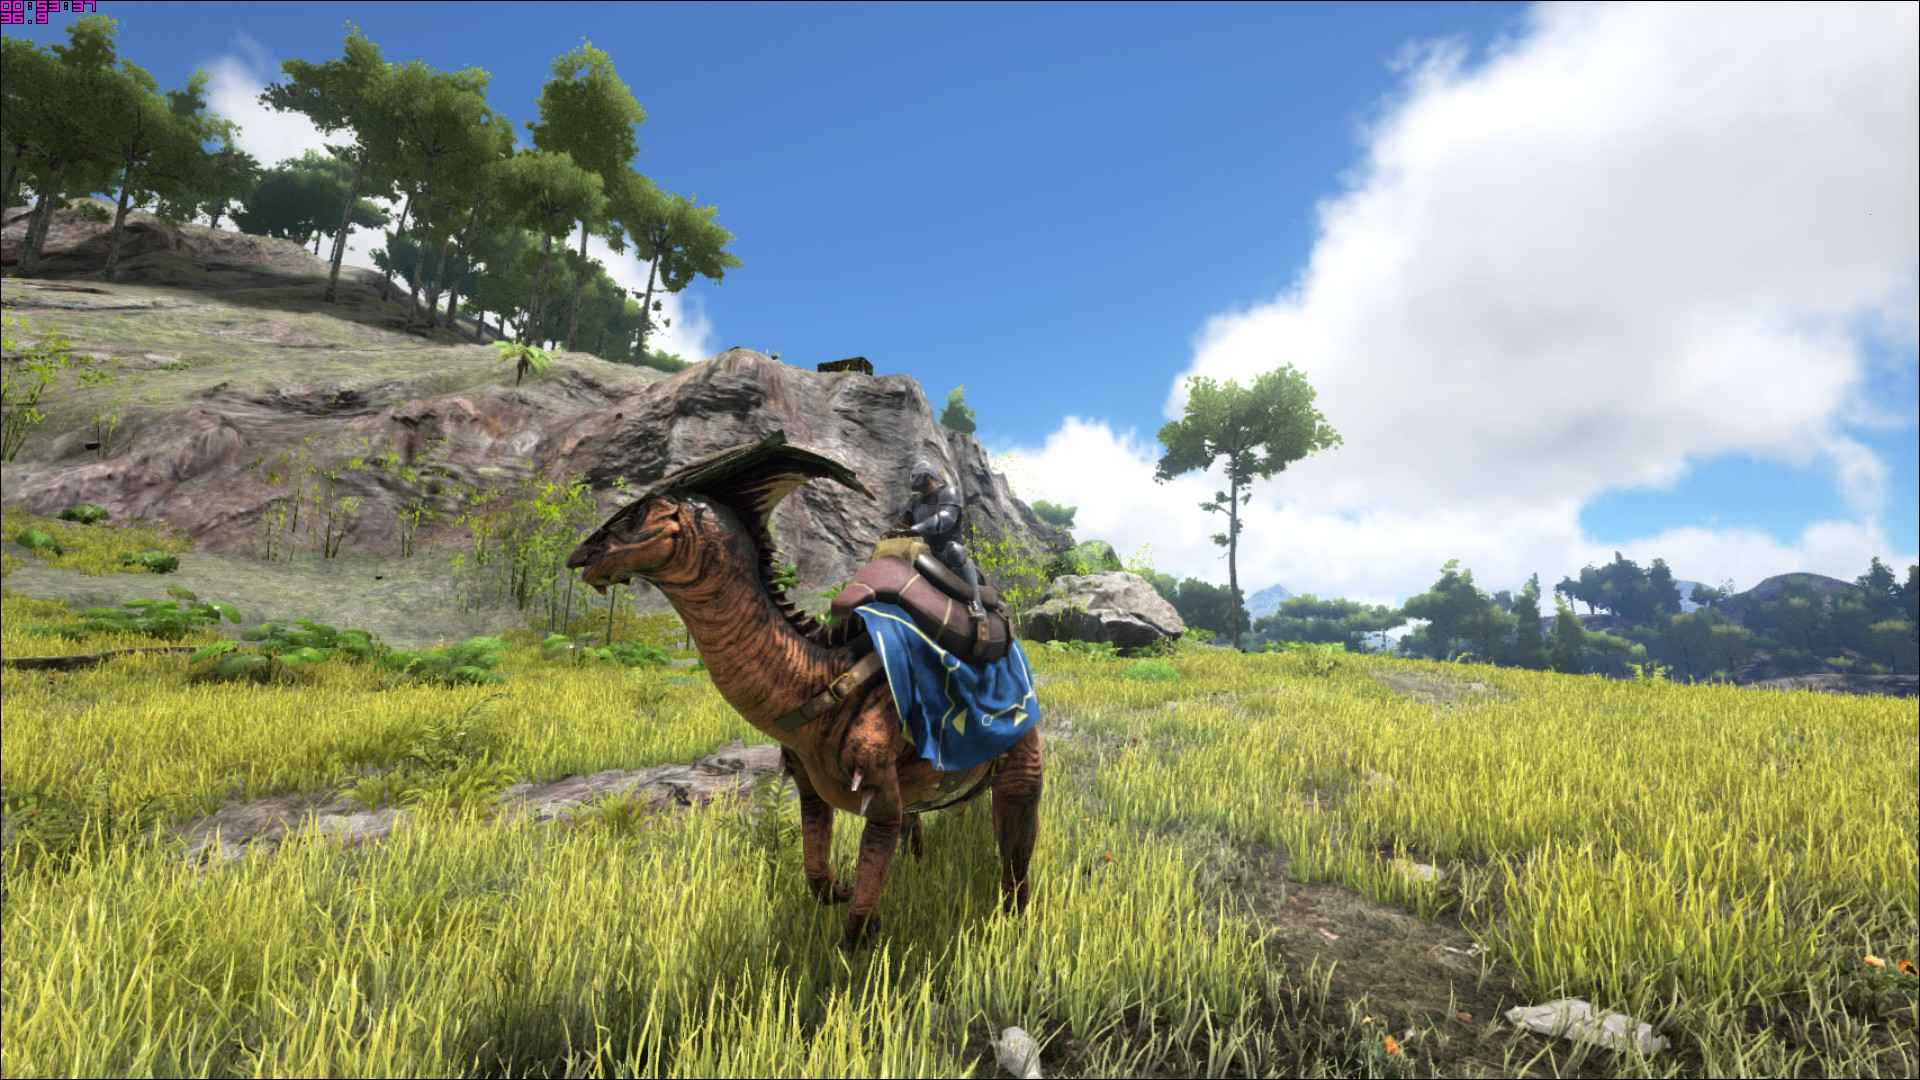 Tamed Parasaur with a rider.